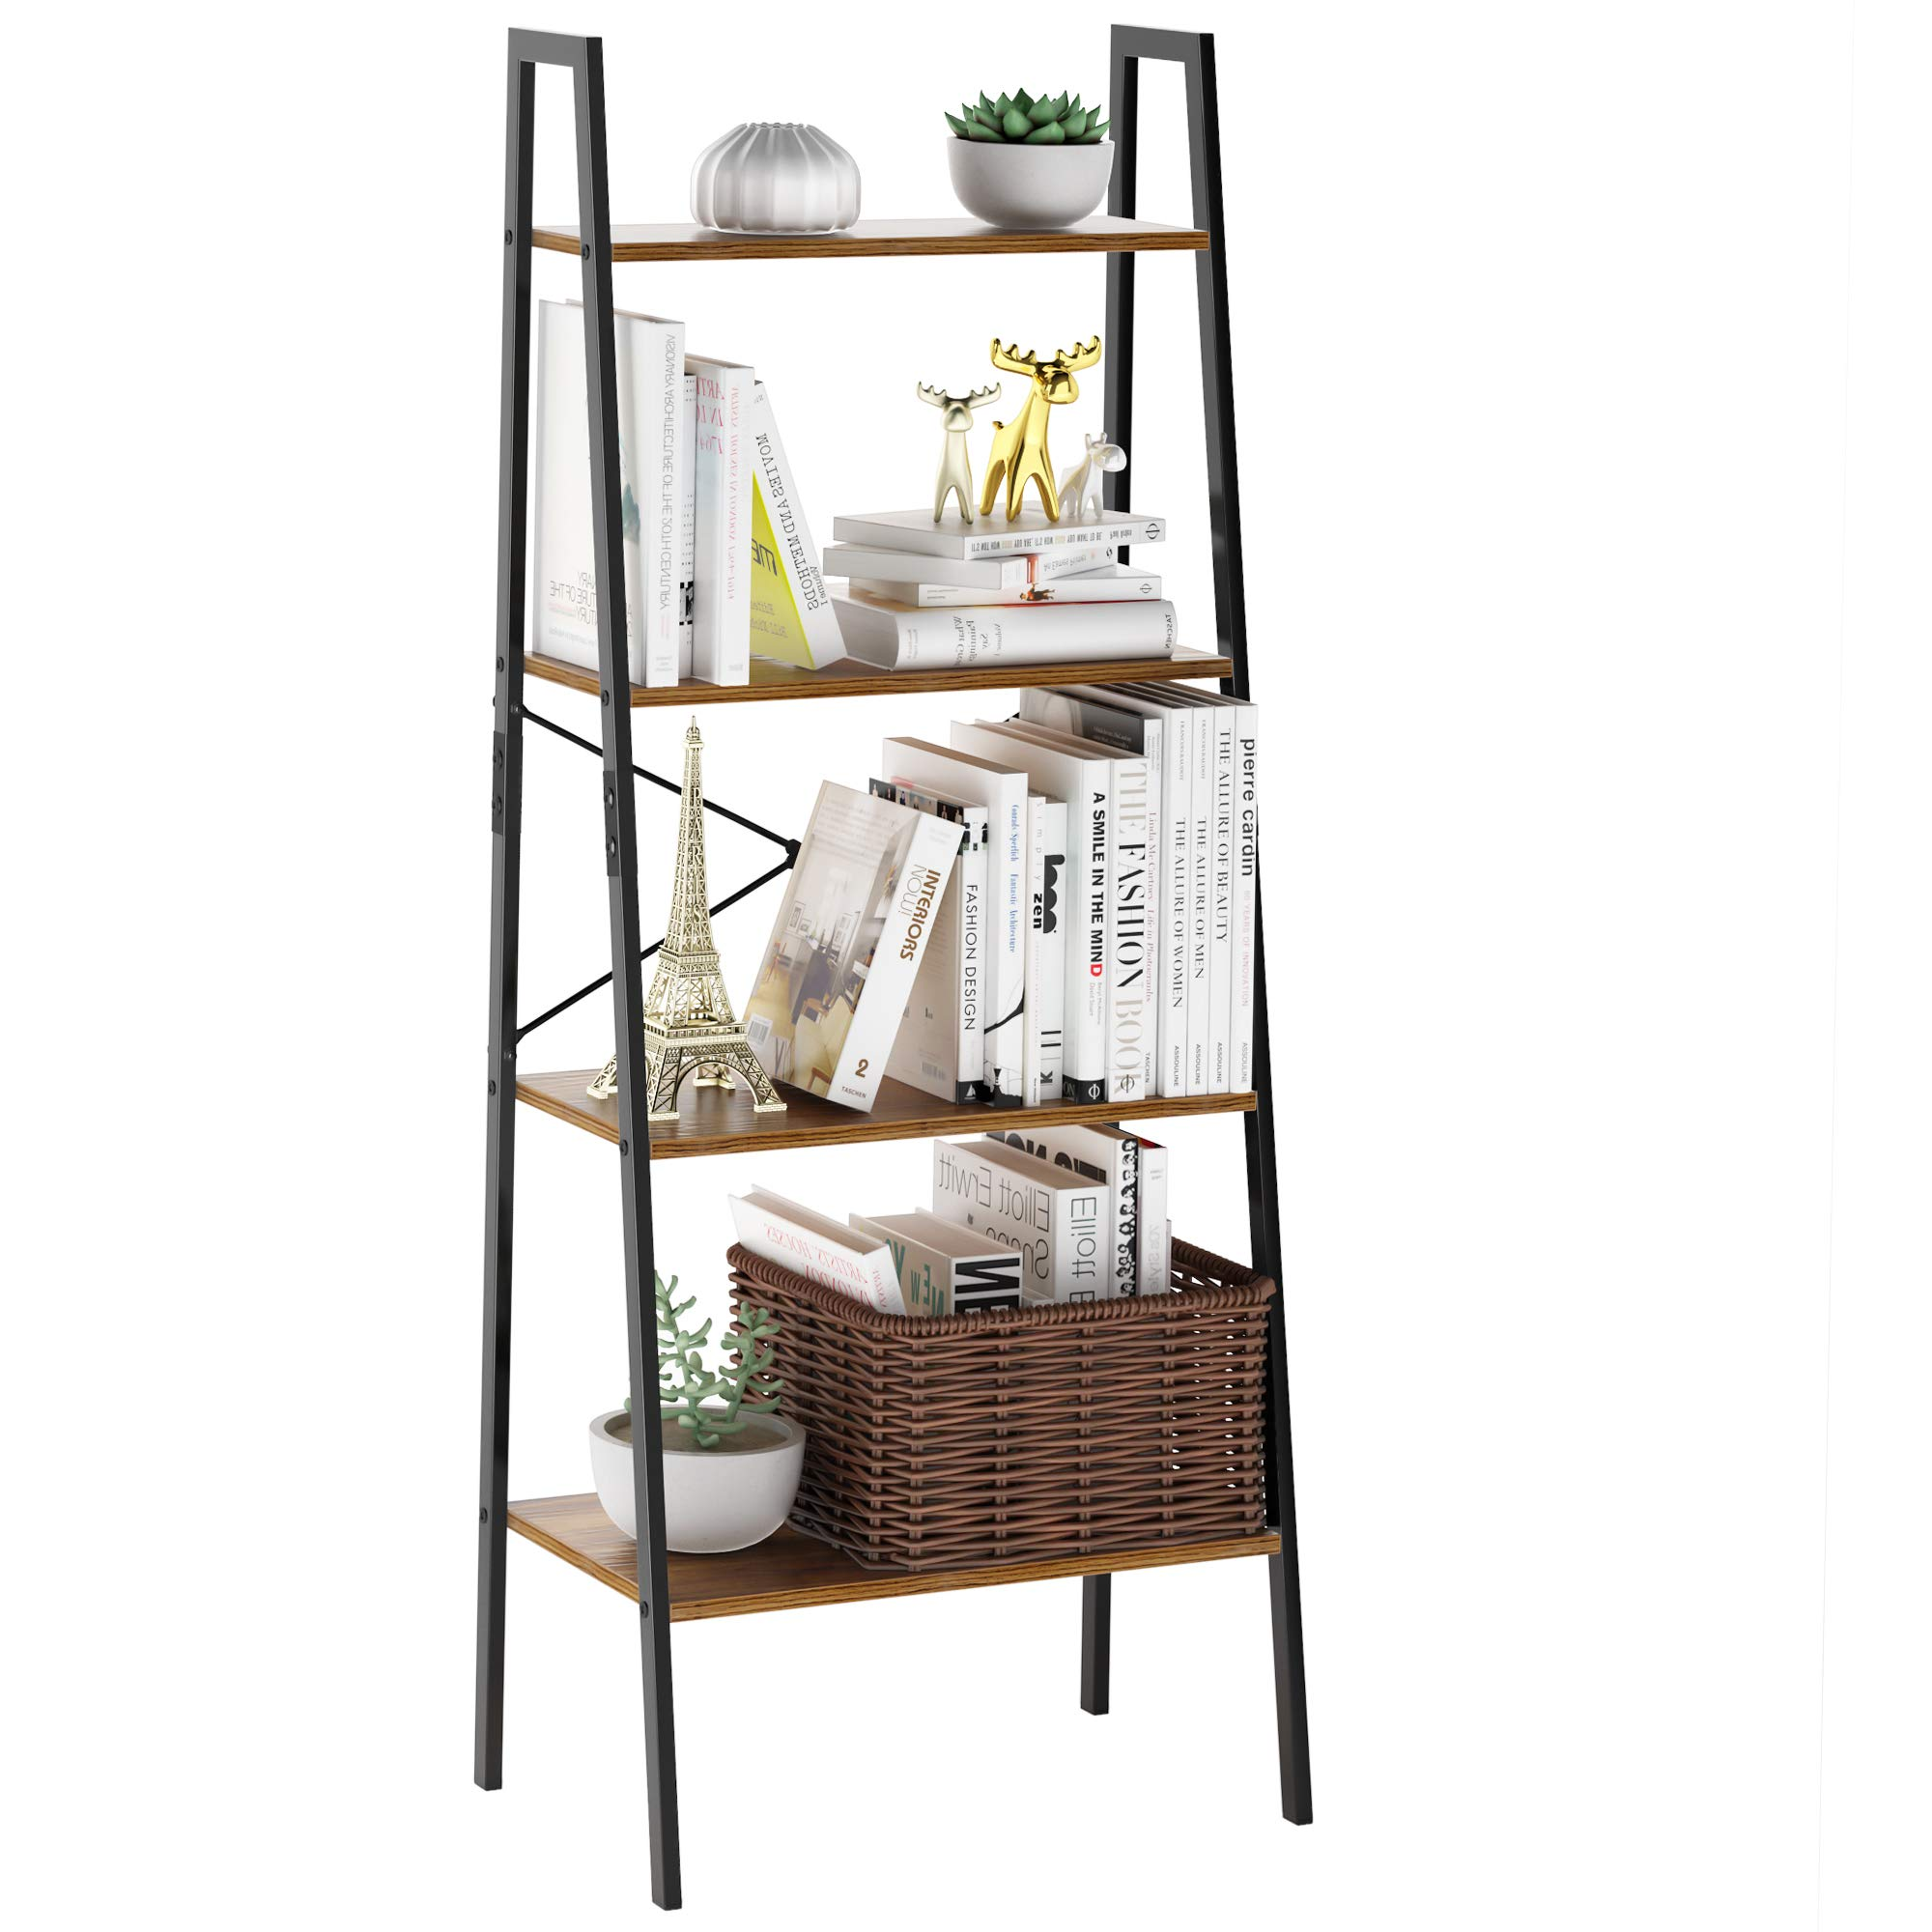 LANGRIA Industrial Ladder Shelf 4 Tier Vintage Bookcase Bookshelf Wood Storage Standing Racks Unit Metal Frame for Bedroom, Living, Office by LANGRIA